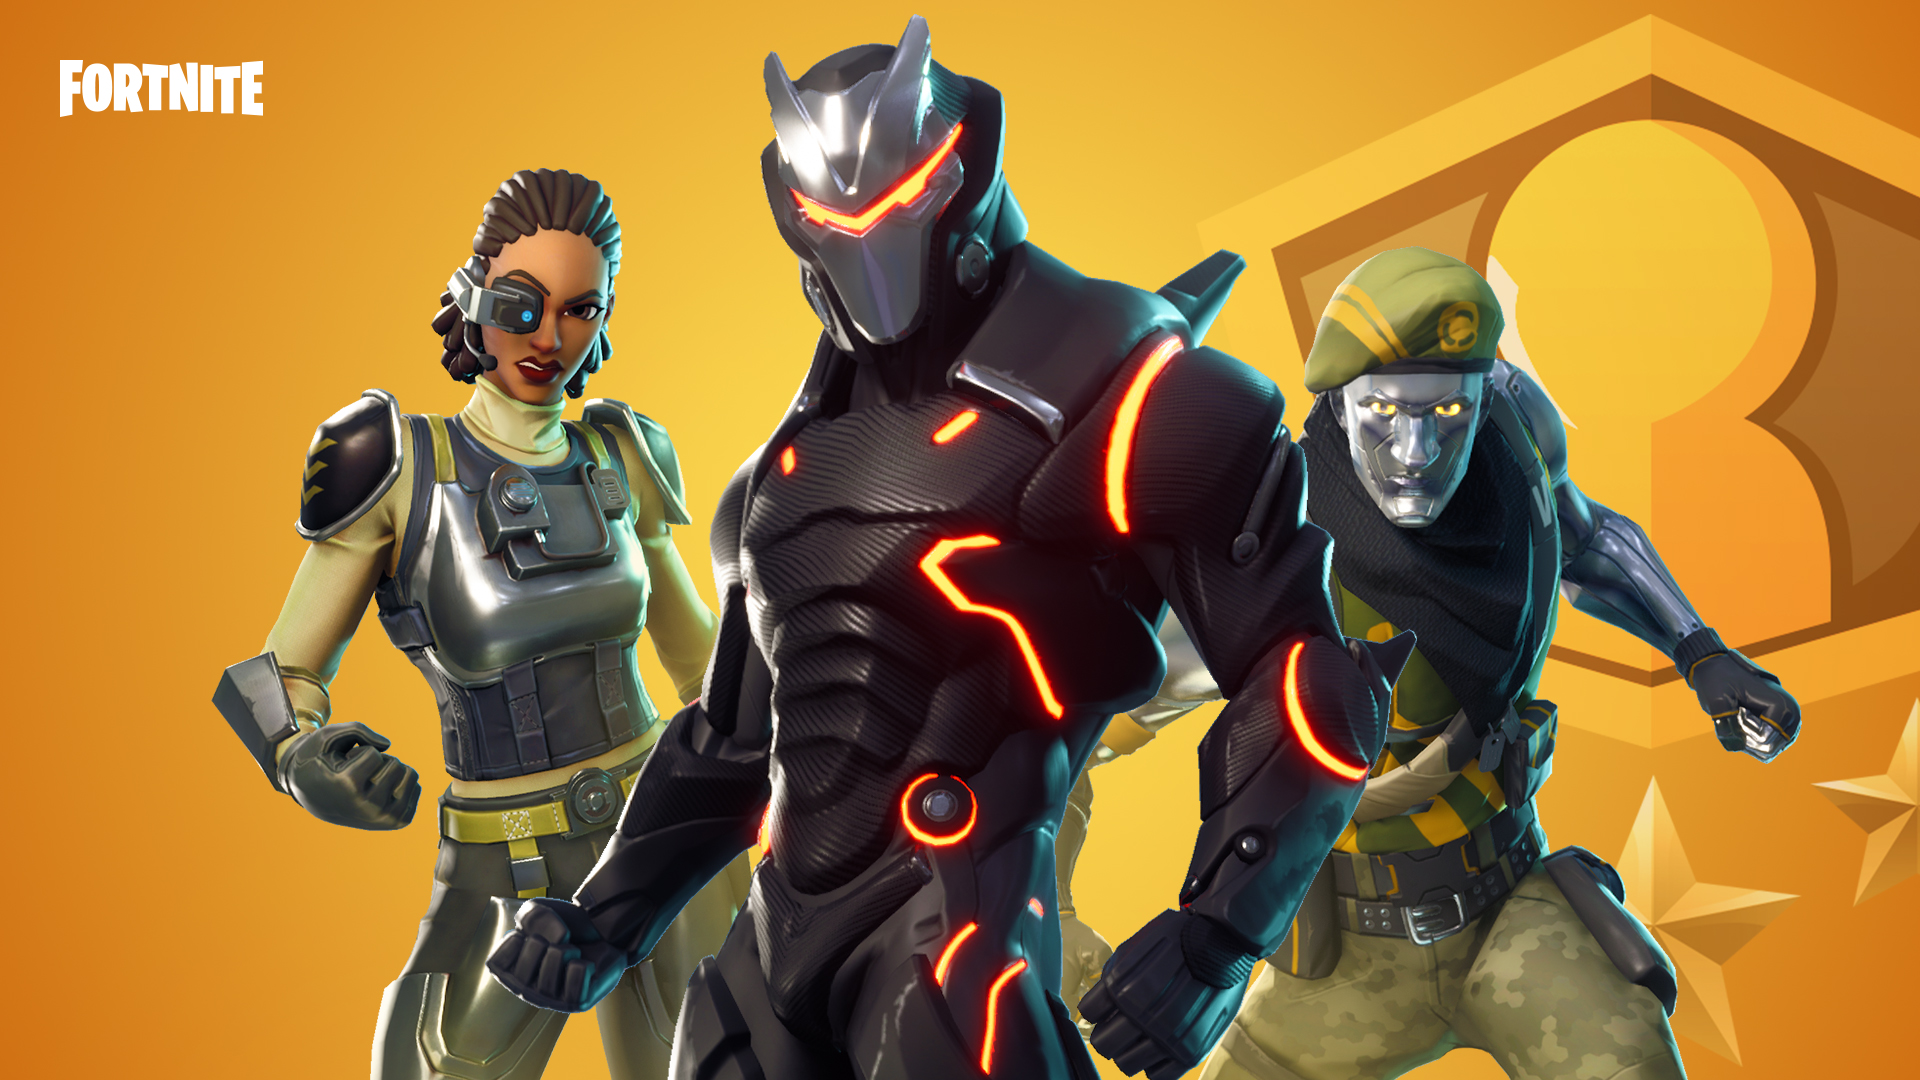 Fortnite Solo Showdown: What Is The New Limited Time Mode?